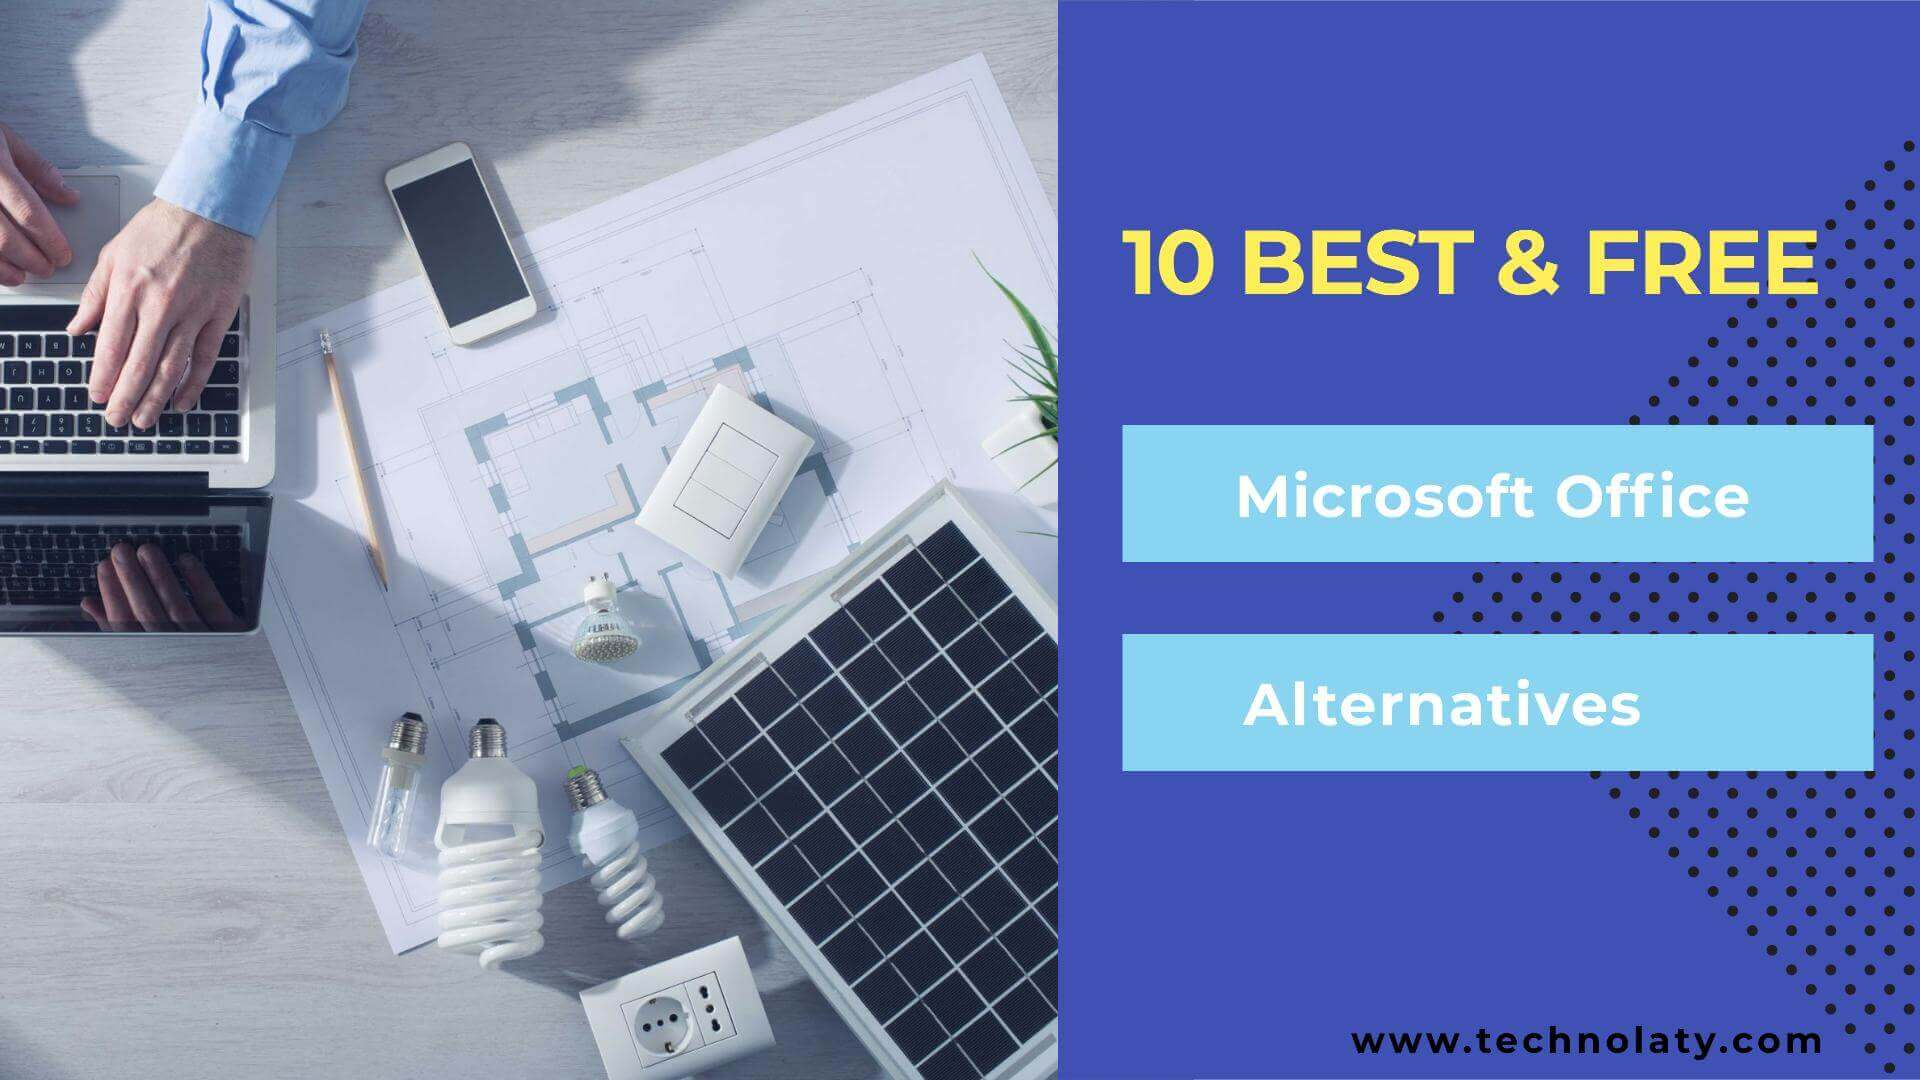 Alternative Software's To MS Office